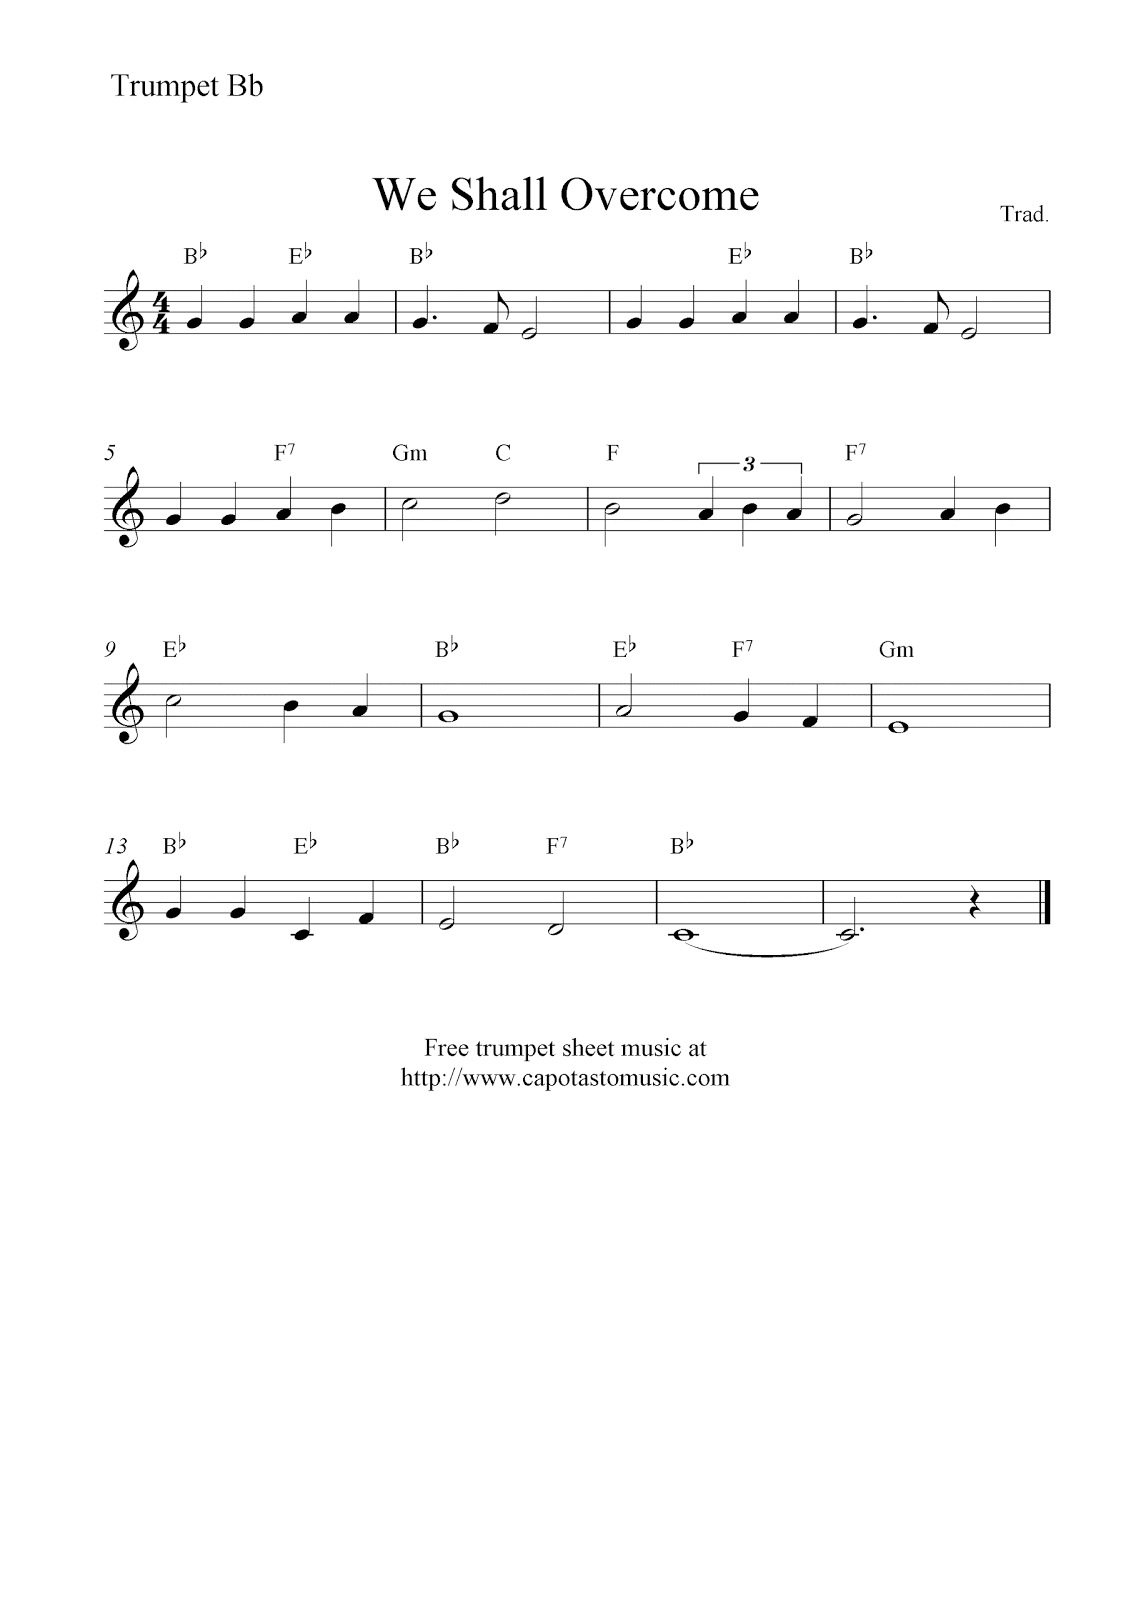 We shall overcome free trumpet sheet music notes